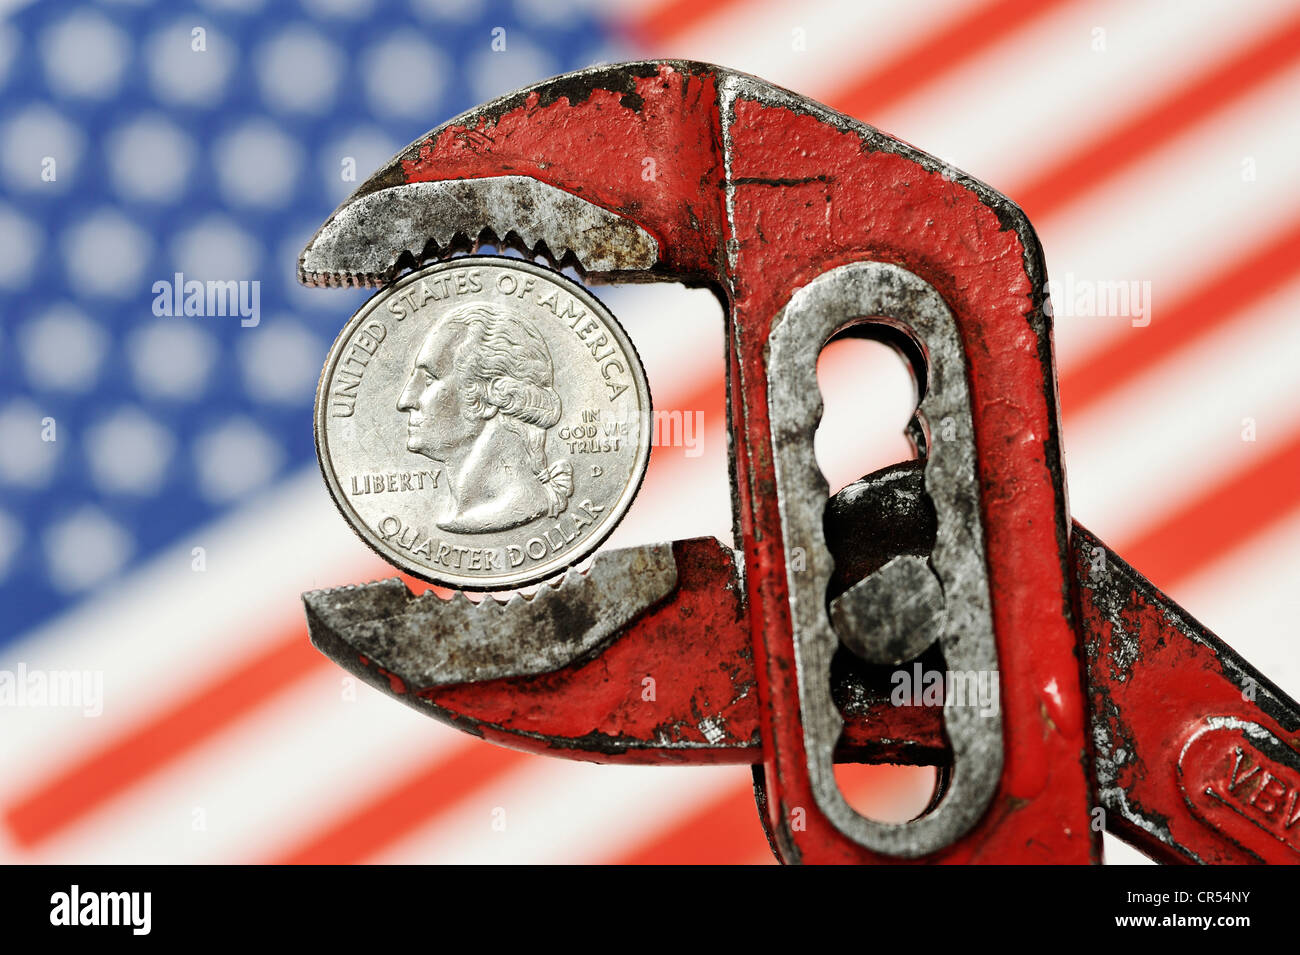 Quarter dollar in a debt wrench, symbolic image for the U.S. national debt - Stock Image